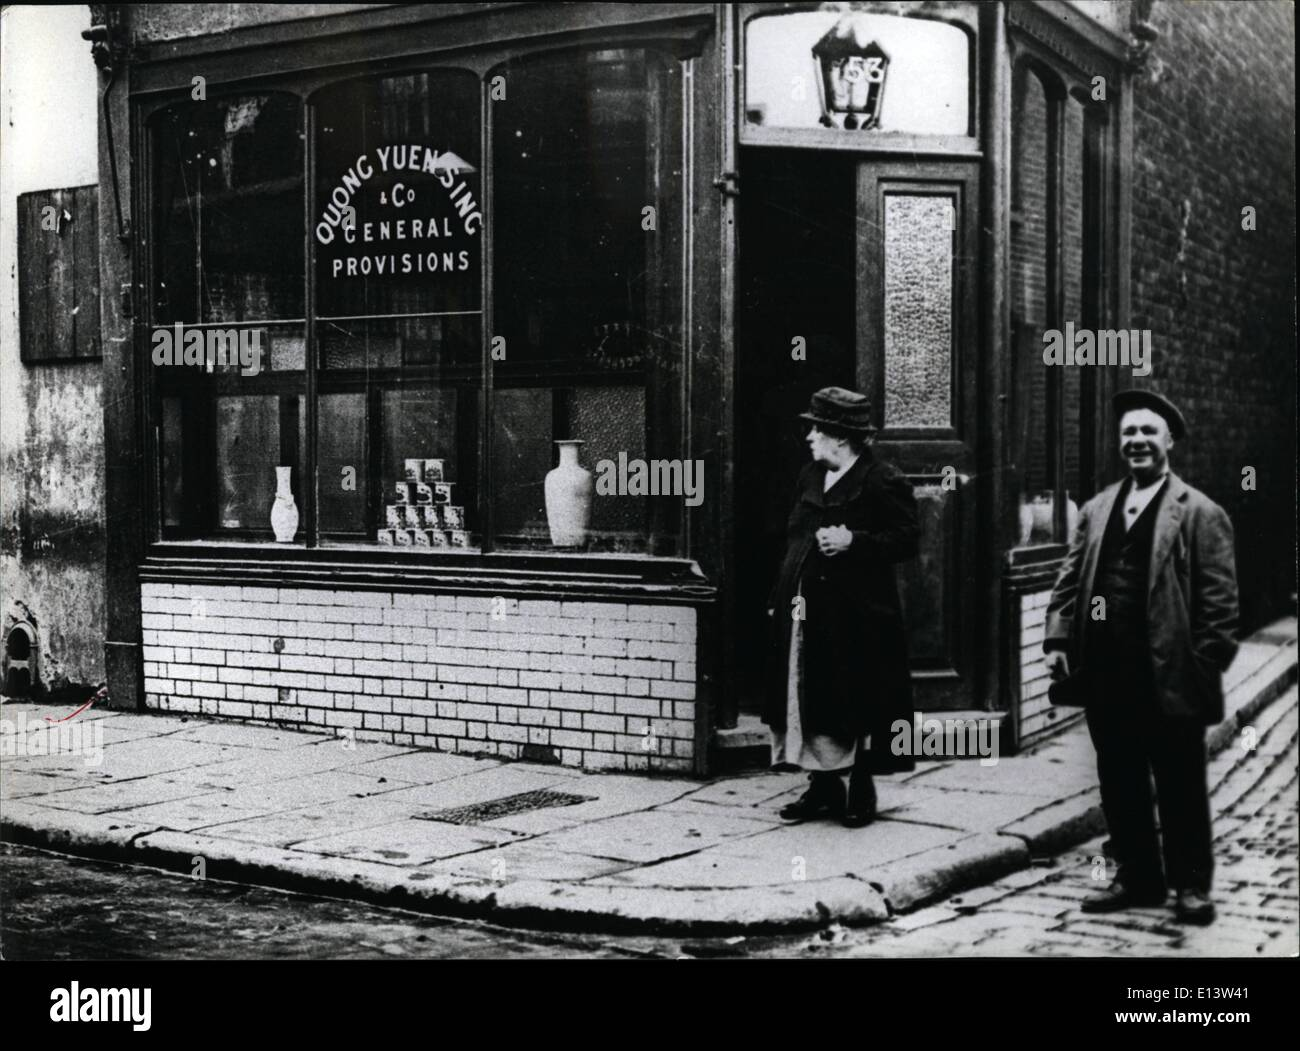 Mar. 27, 2012 - London In The Twenties: Chinese shop in Pennyfields, East London. - Stock Image